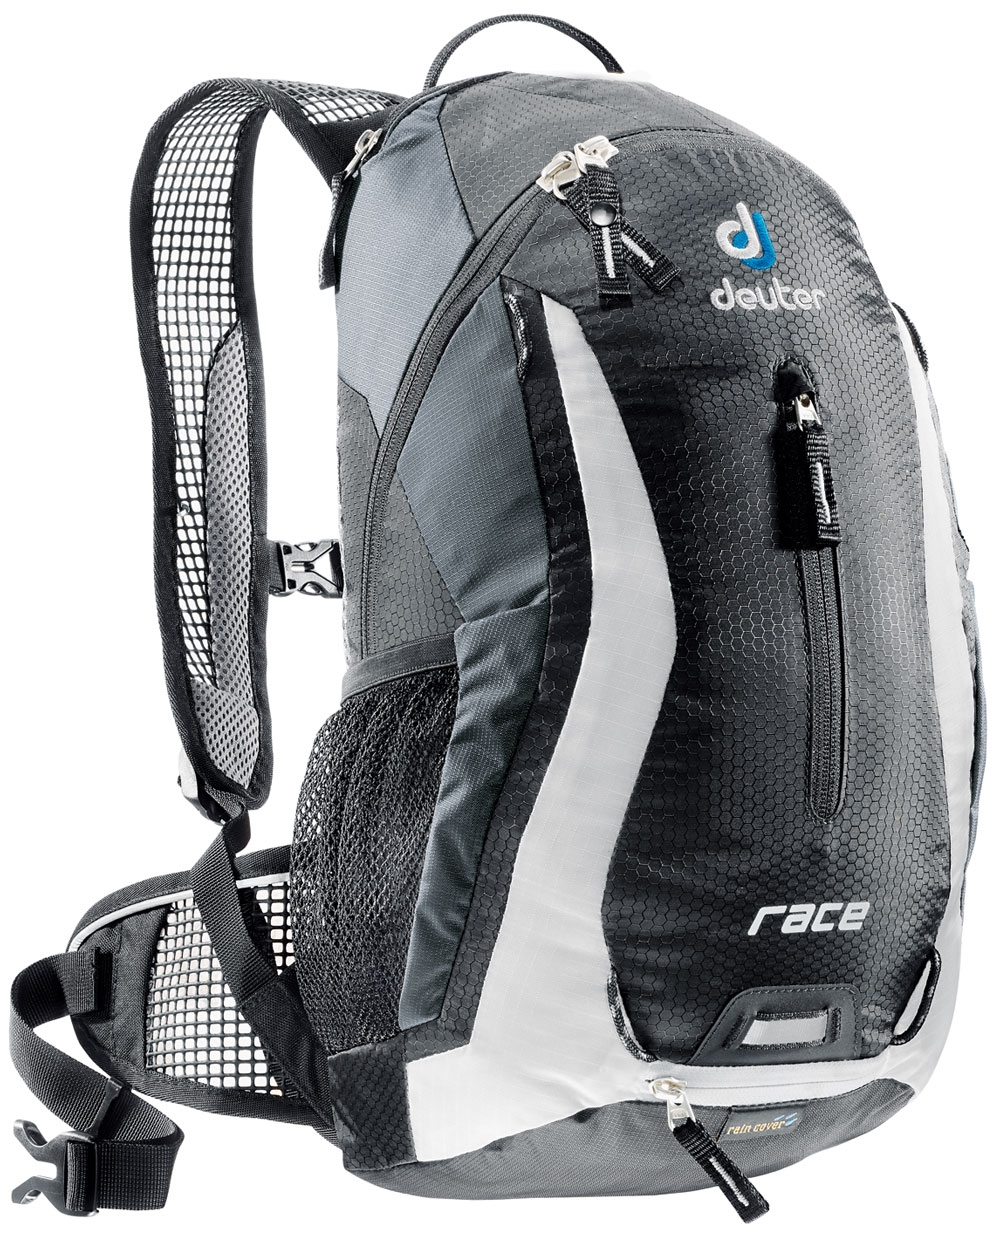 Deuter Race Black White Rugzak Futurumshop Nl